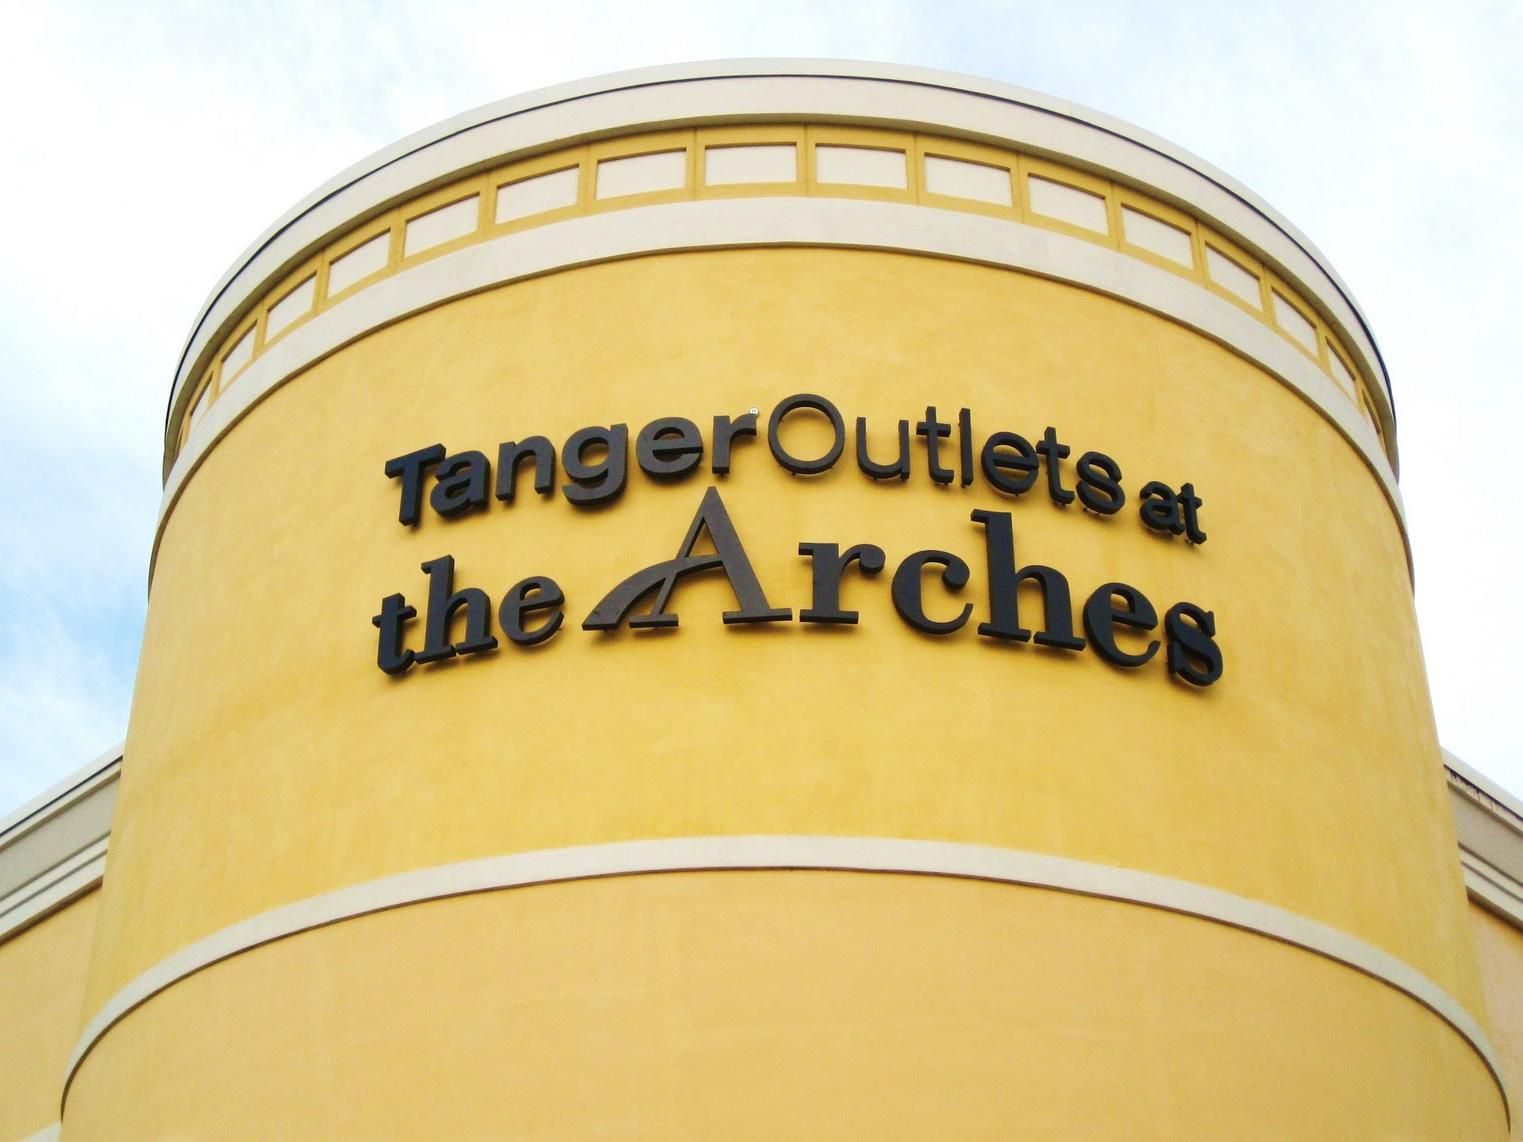 Tanger Outlets @ the Arches, just a short 20 minute drive